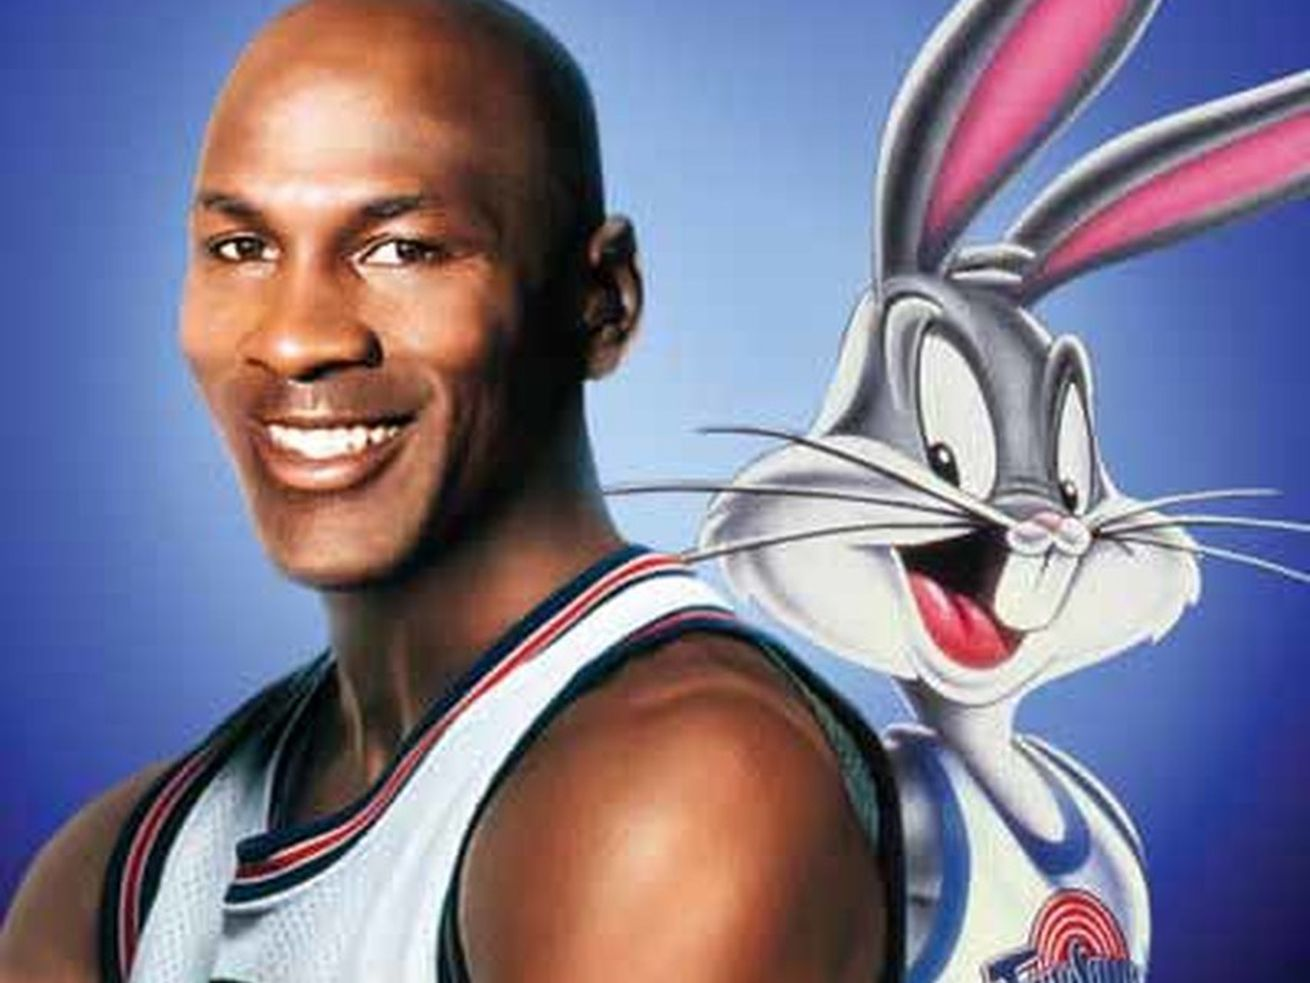 Michael Jordan and Bugs Bunny on the poster for Space Jam.